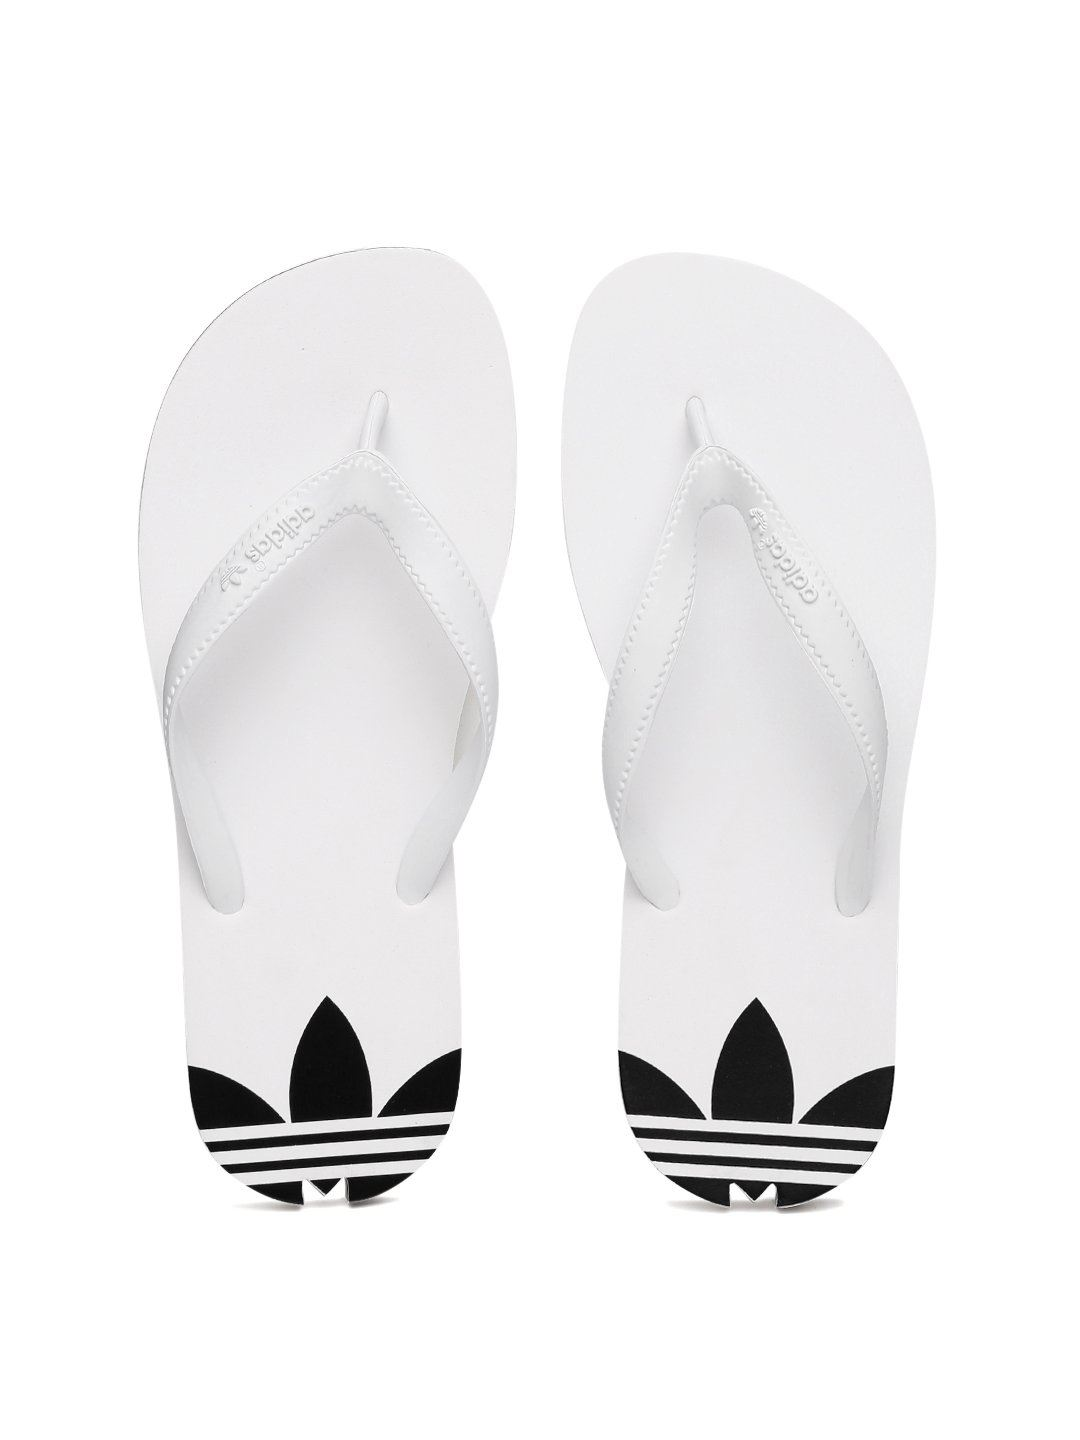 6f307a93376 Details about adidas ORIGINALS ADI SUN THONG FLIP FLOPS SANDALS WHITE  WOMEN'S KIDS BEACH NEW